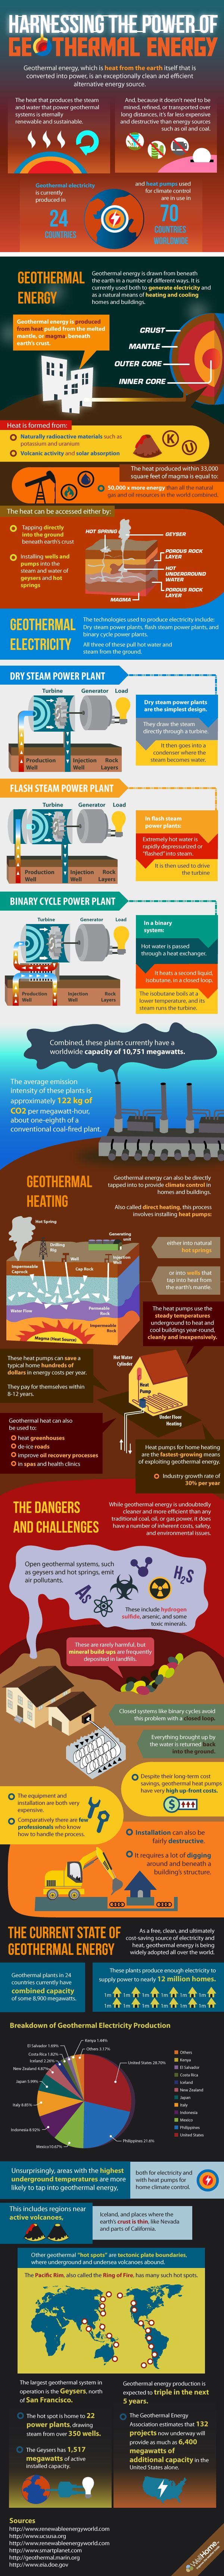 All you need to know about geothermal energy.